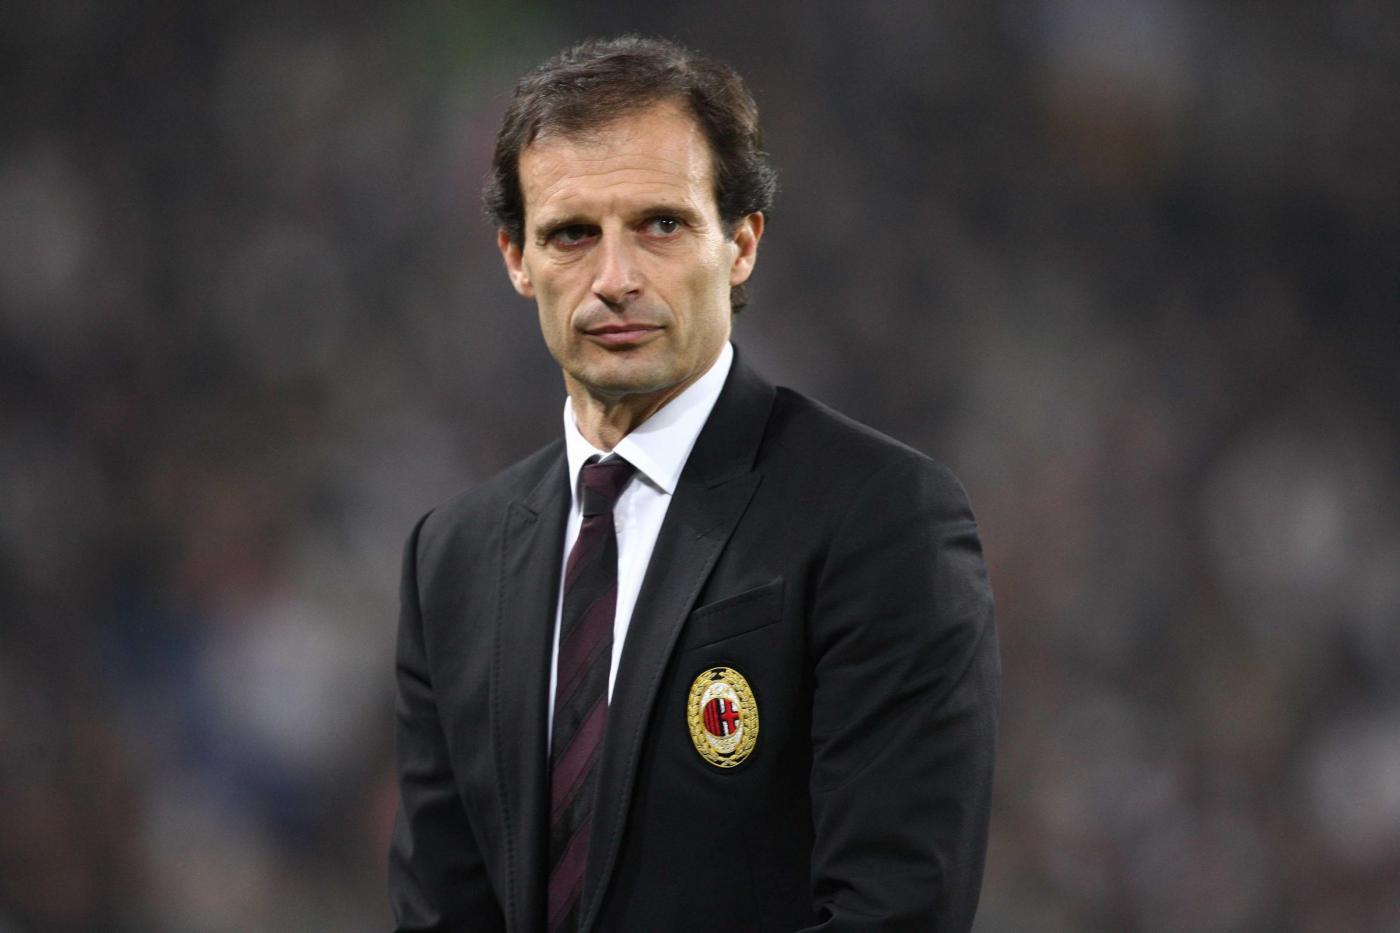 The 50-year old son of father (?) and mother(?), 183 cm tall Massimo Allegri in 2018 photo